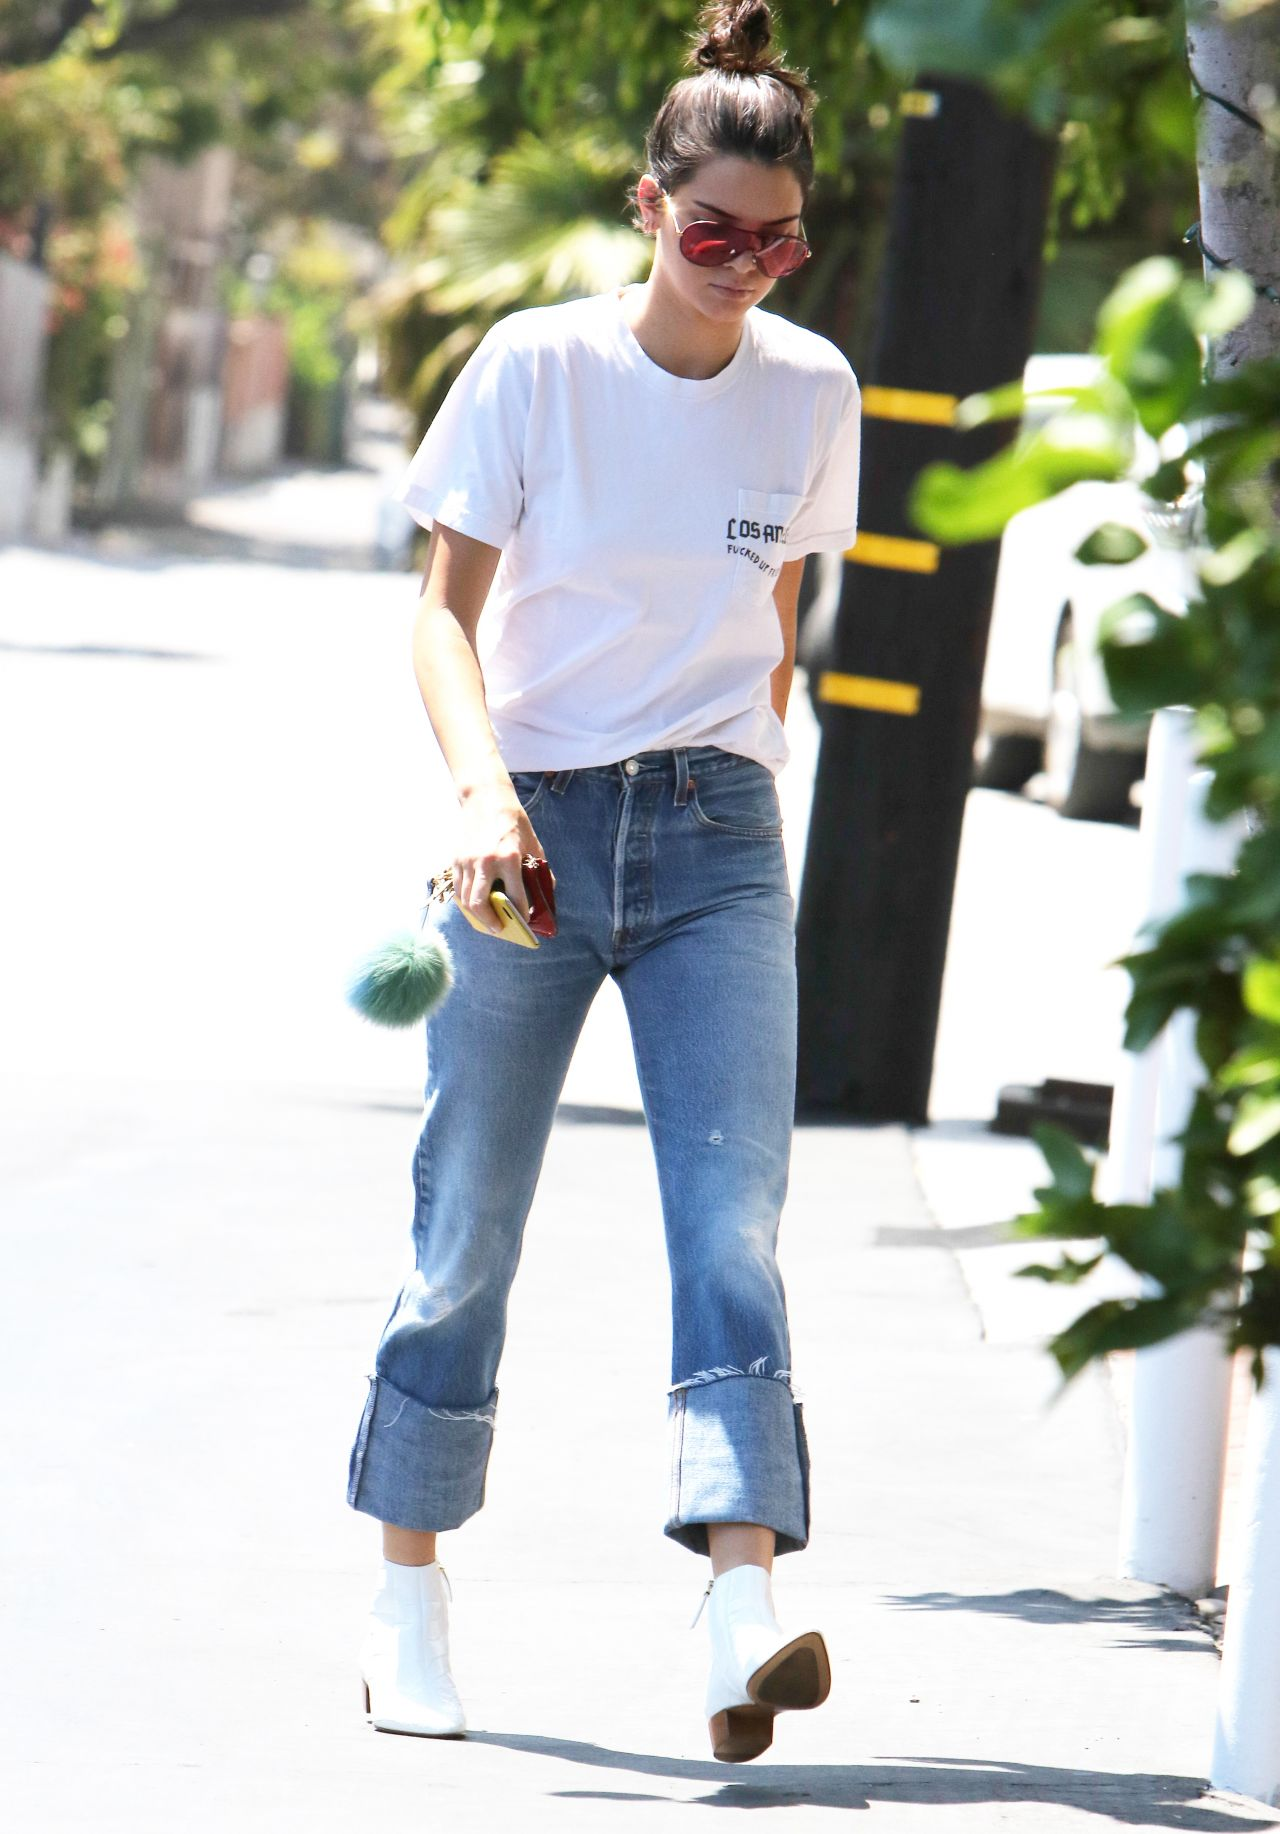 kendall jenner street style  at fred segal in west